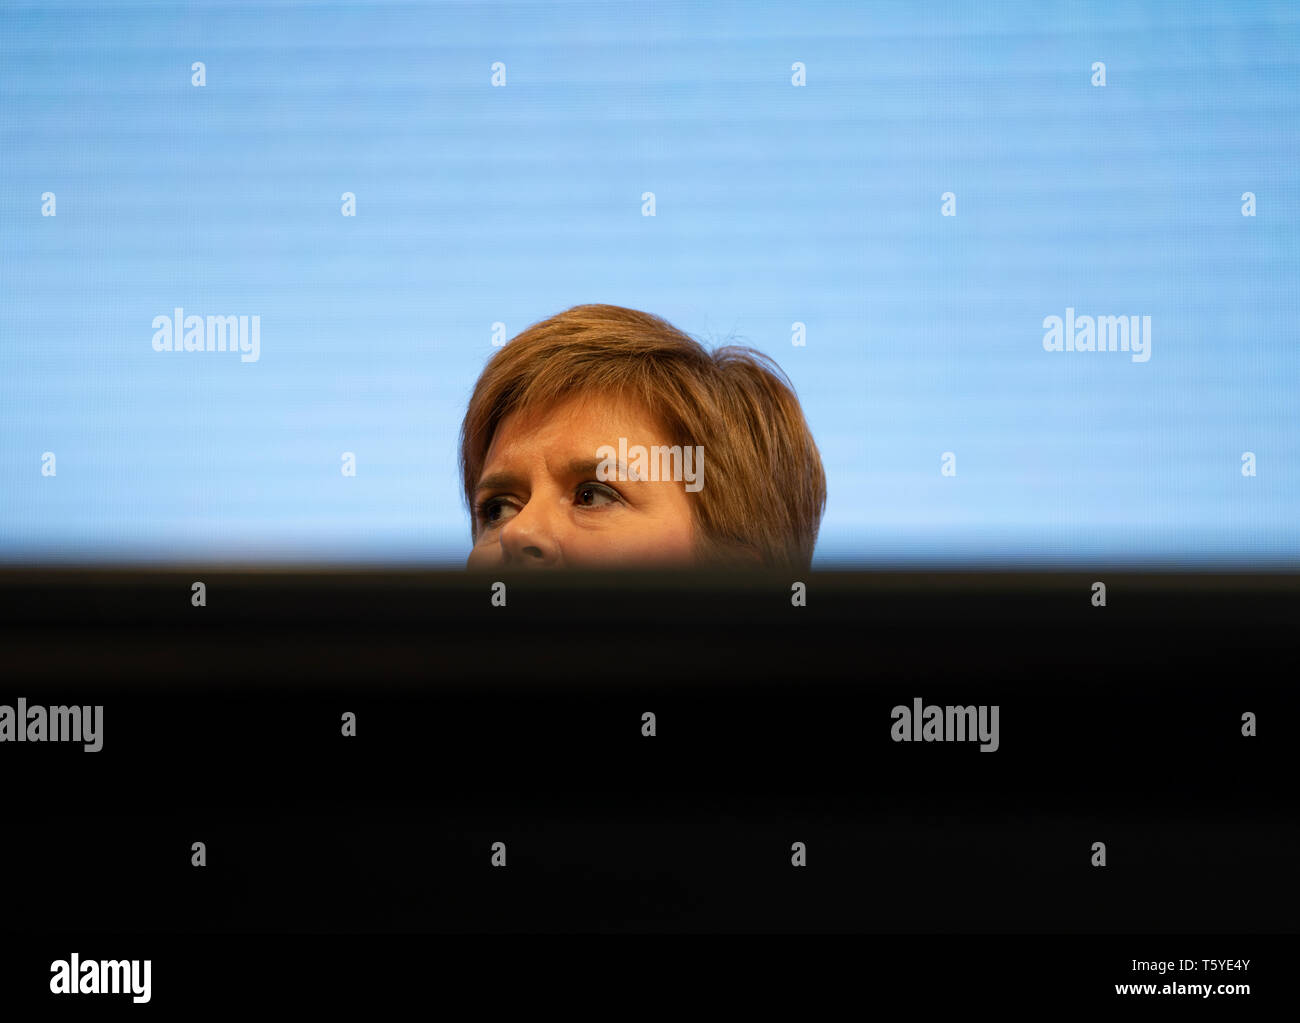 Edinburgh, Scotland, UK. 27 April, 2019. SNP ( Scottish National Party) Spring Conference takes place at the EICC ( Edinburgh International Conference Centre) in Edinburgh. Pictured; First Minister Nicola Sturgeon, partially hidden behind table Credit: Iain Masterton/Alamy Live News - Stock Image